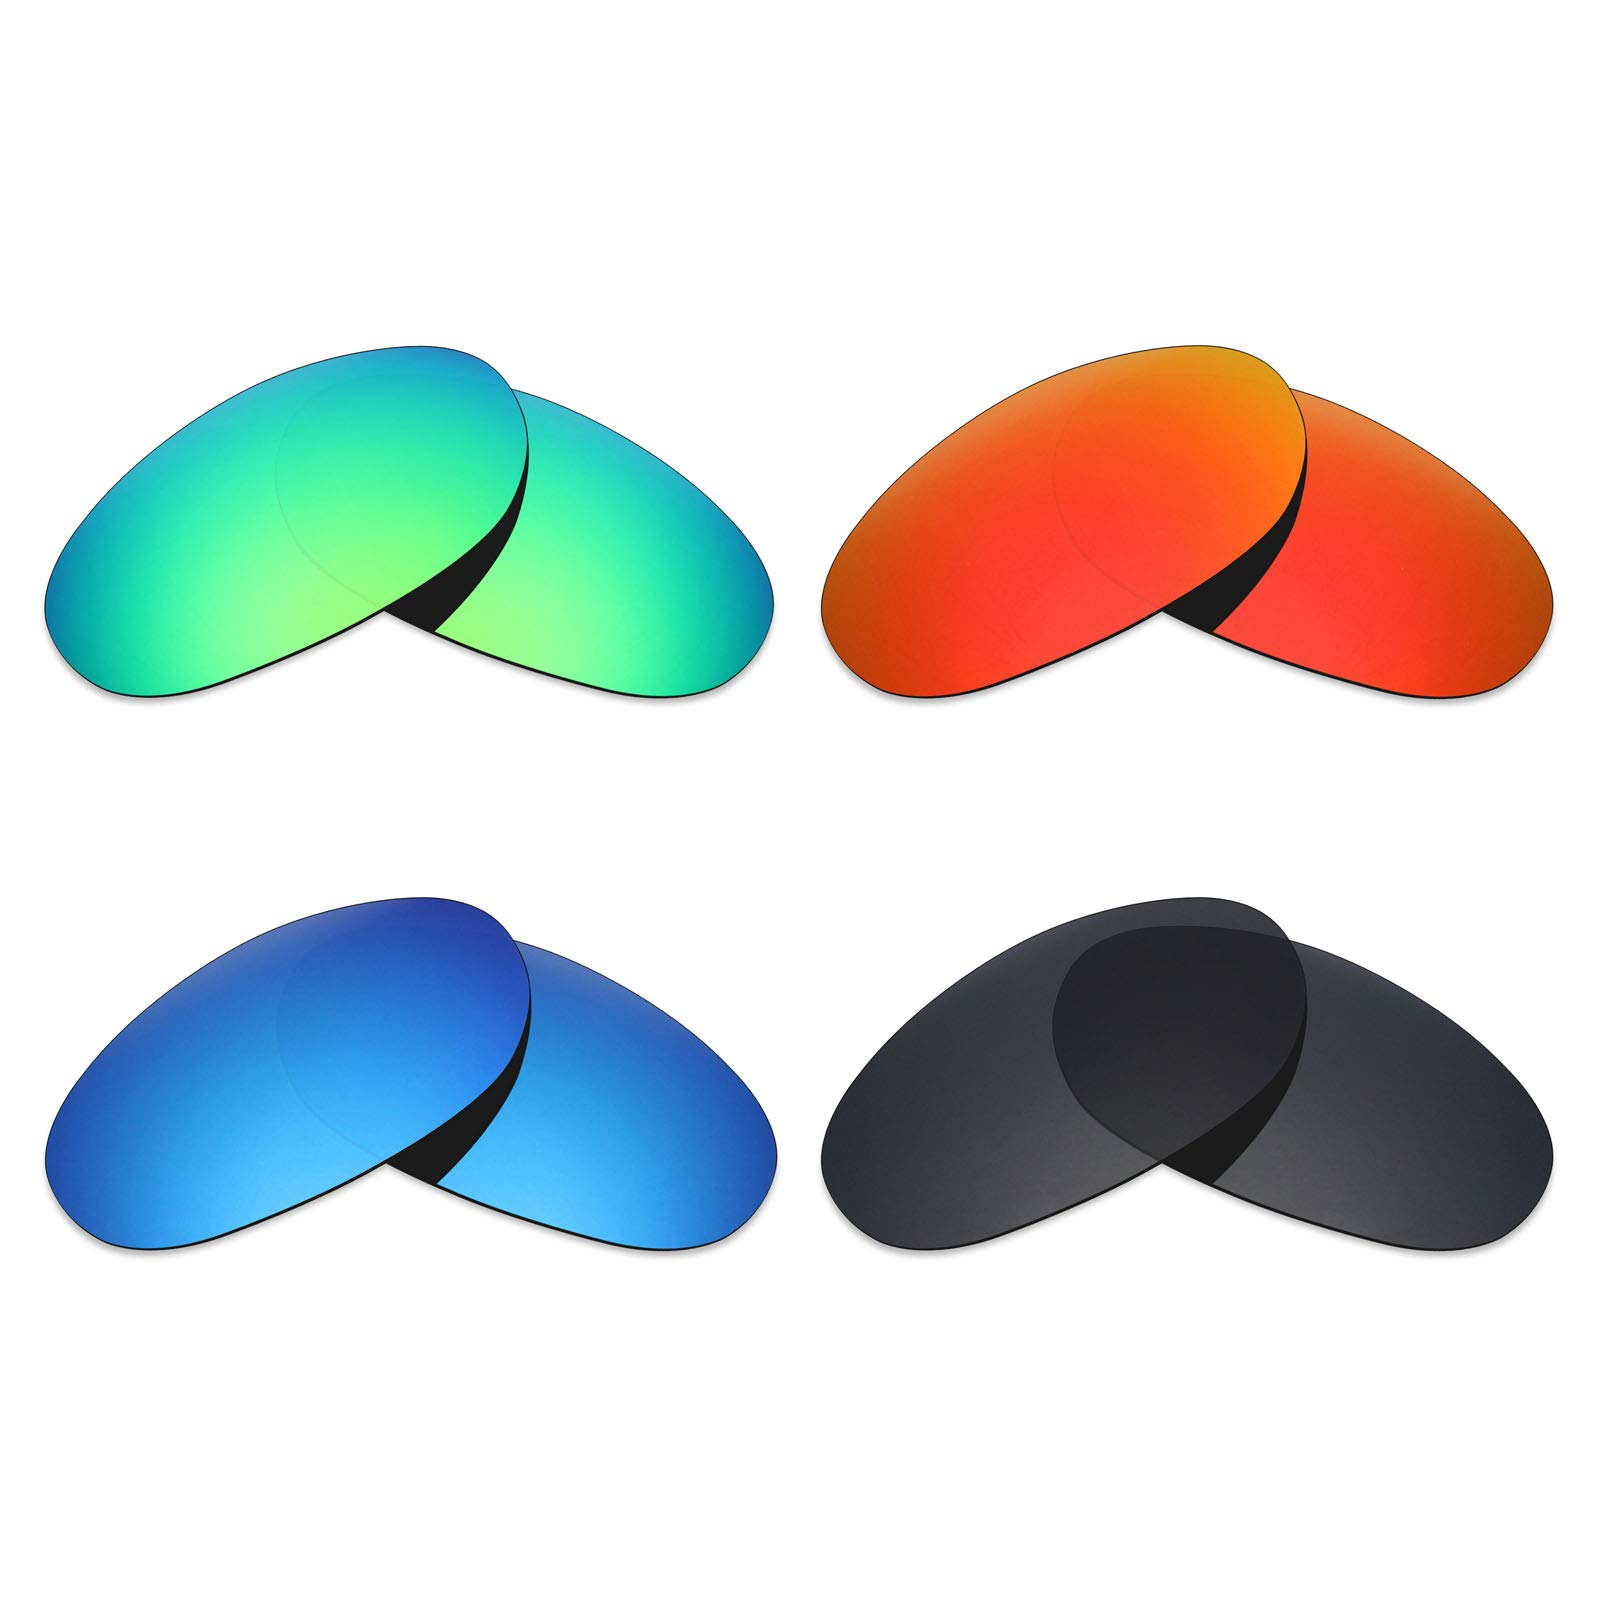 Mryok 4 Pair Polarized Replacement Lenses for Costa Del Mar Fathom Sunglass - Stealth Black/Fire Red/Ice Blue/Emerald Green